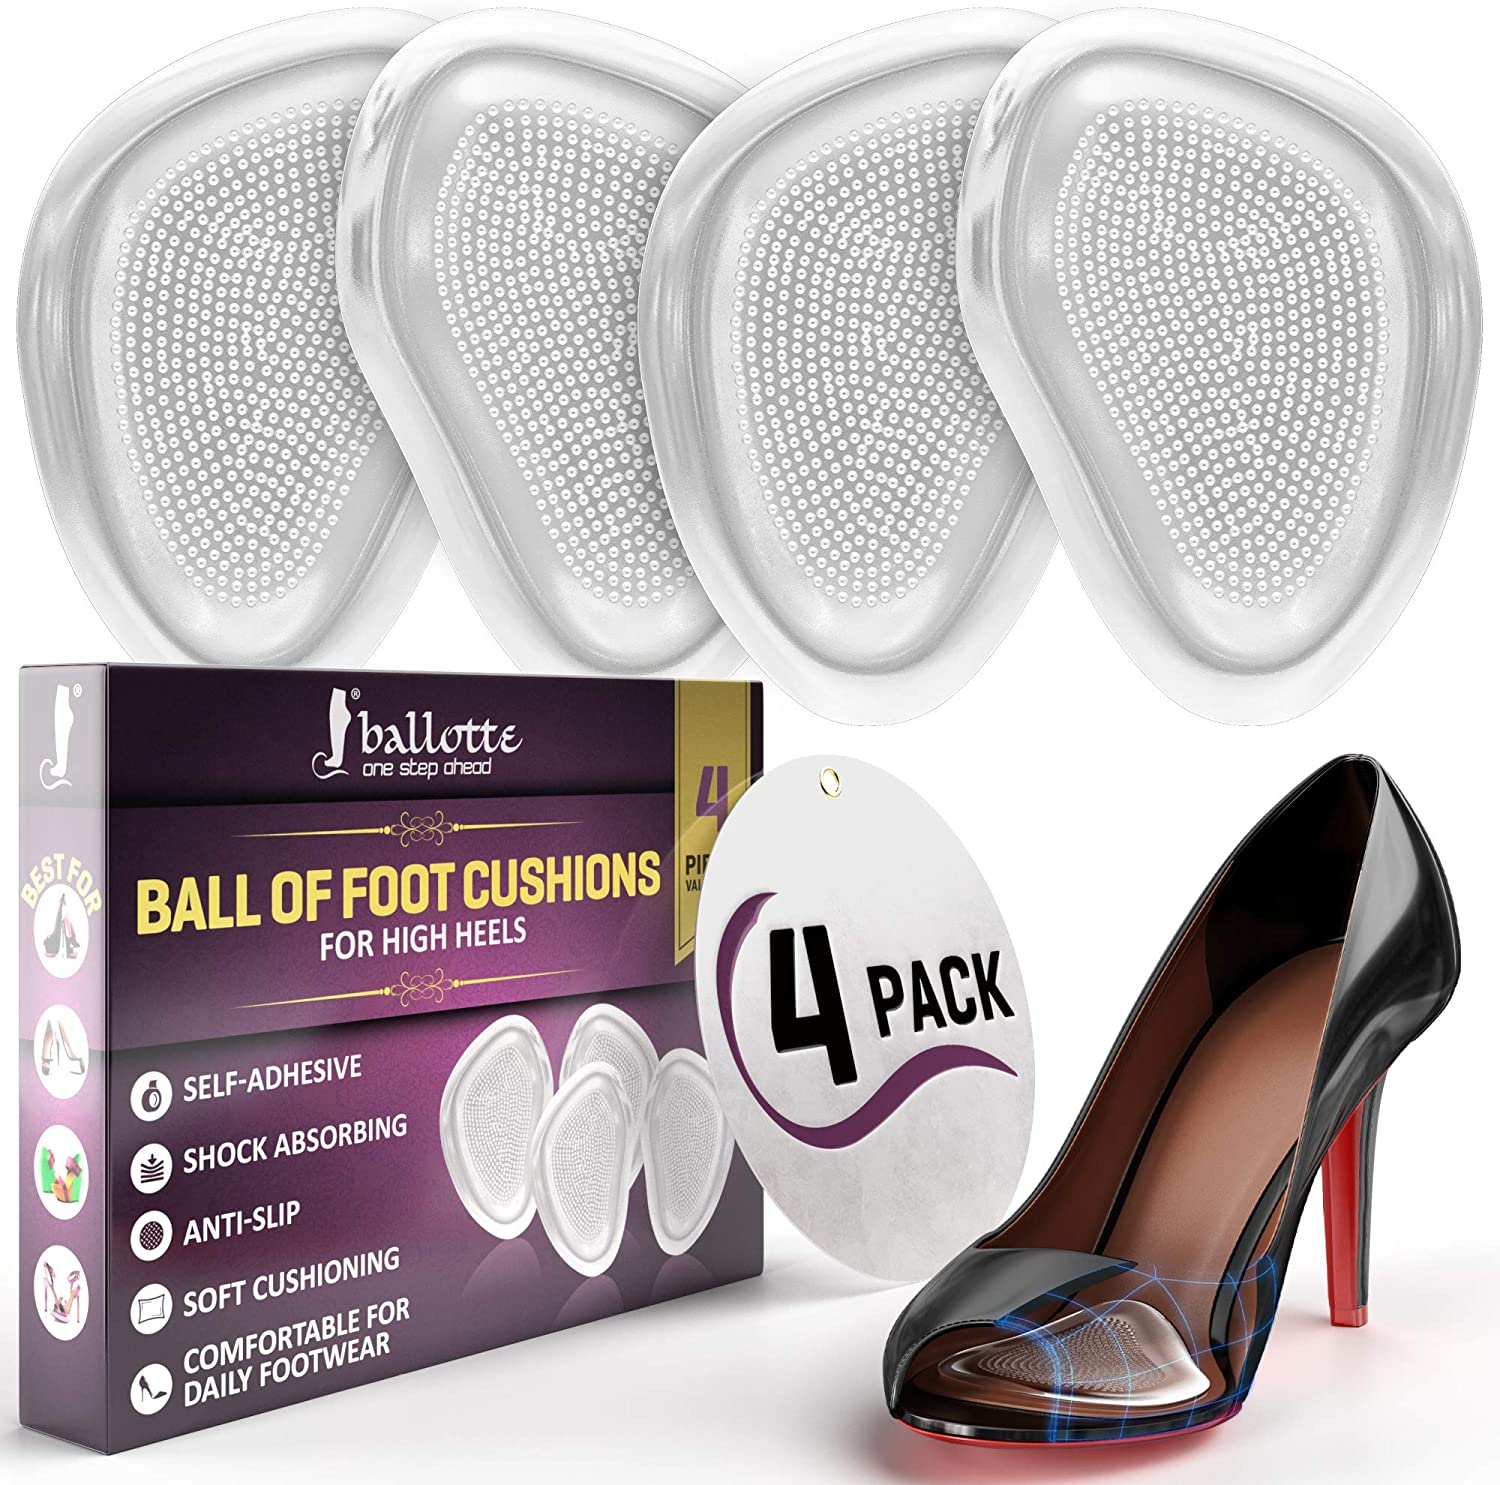 Premium Extra soft Metatarsal Pads by Ballotte